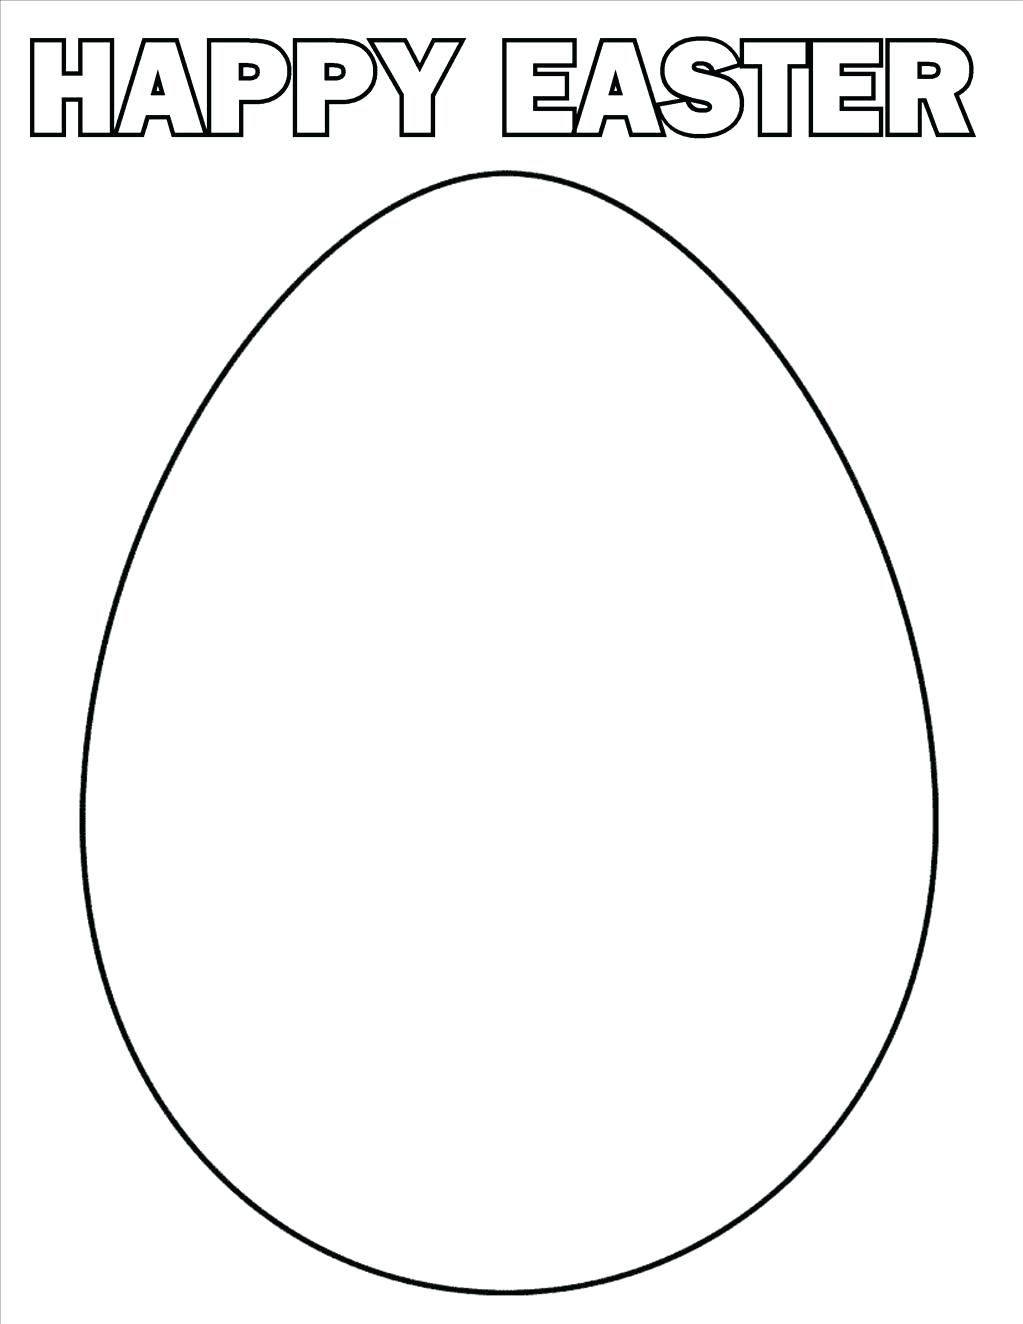 1023x1324 Coloring Page Egg Coloring Pages Top Page Snapshot Ukrainian Egg